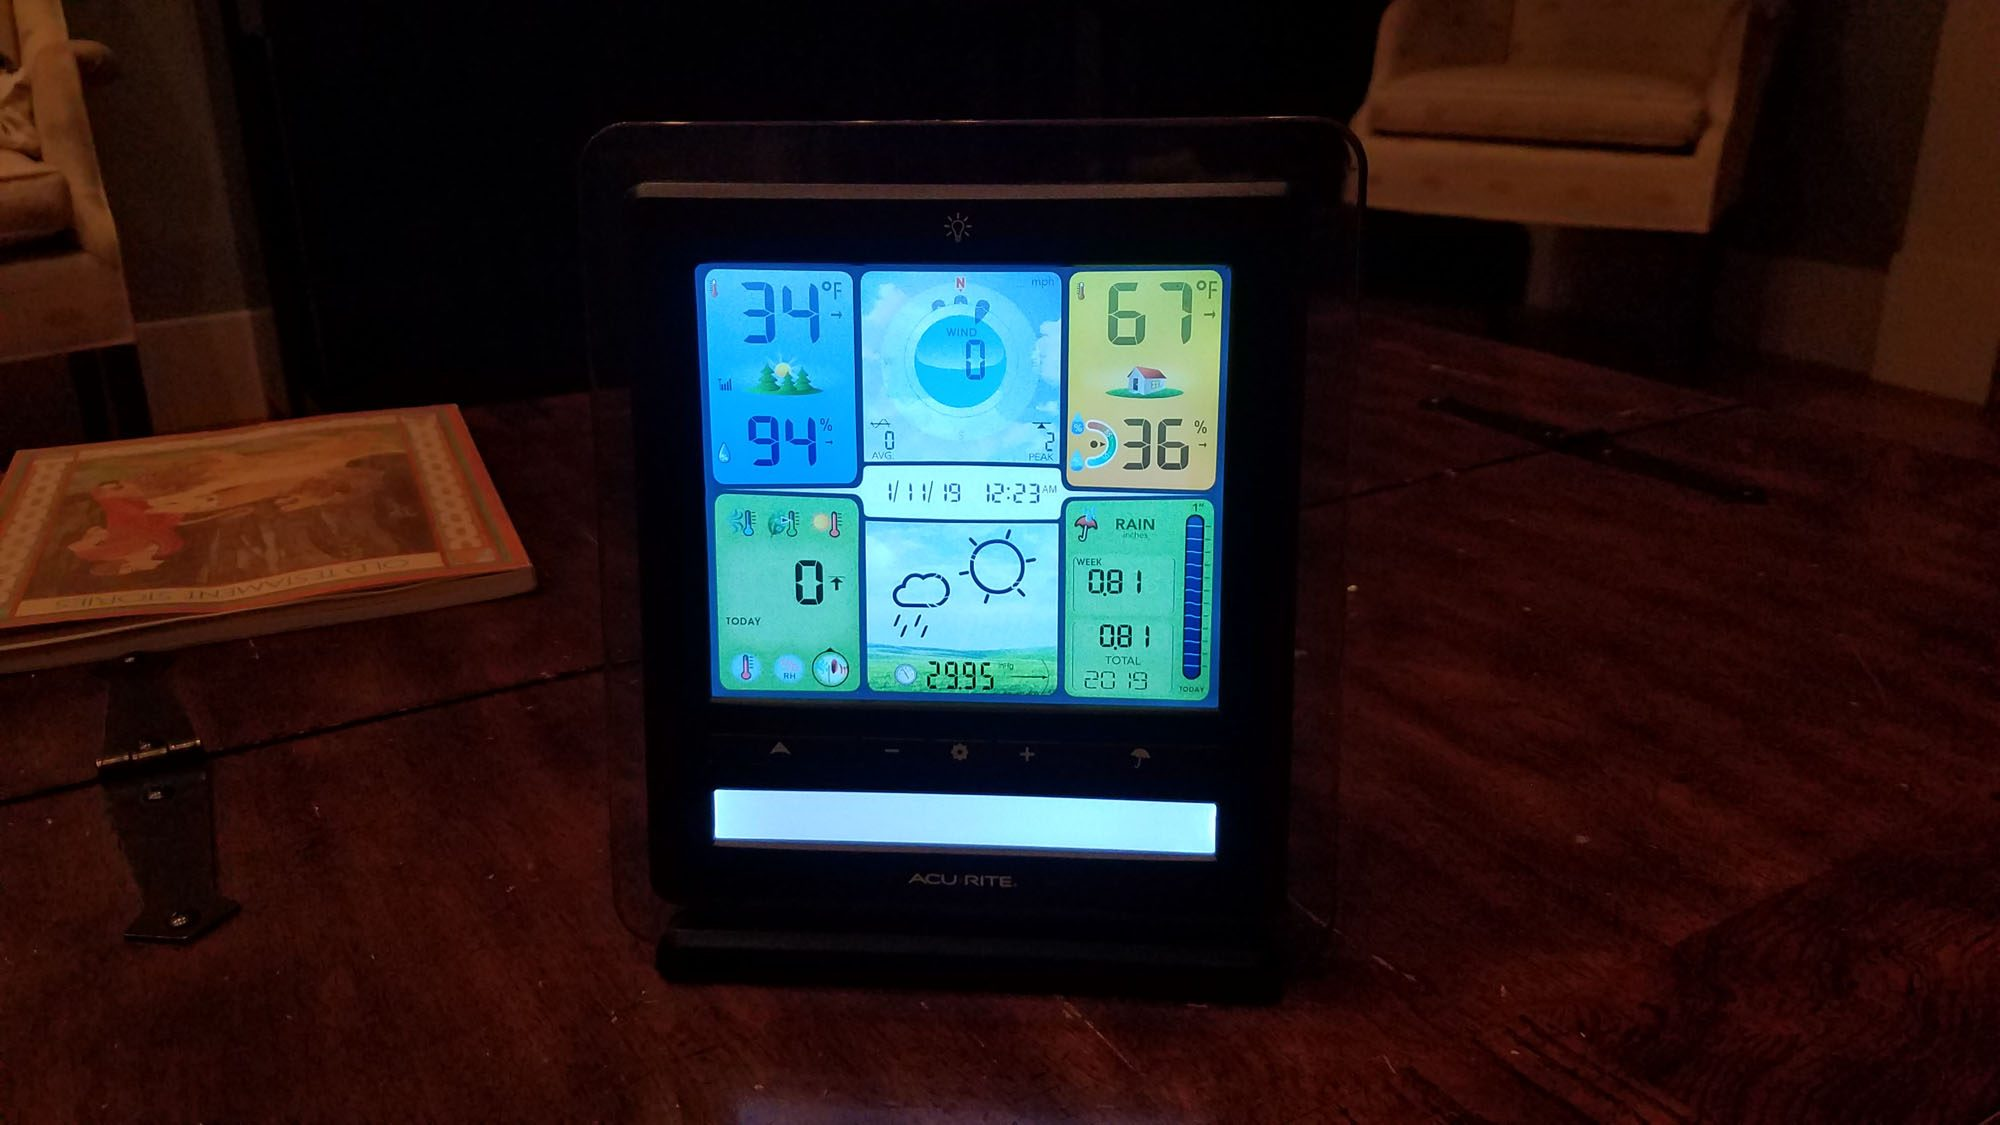 AcuRite Display Backlight